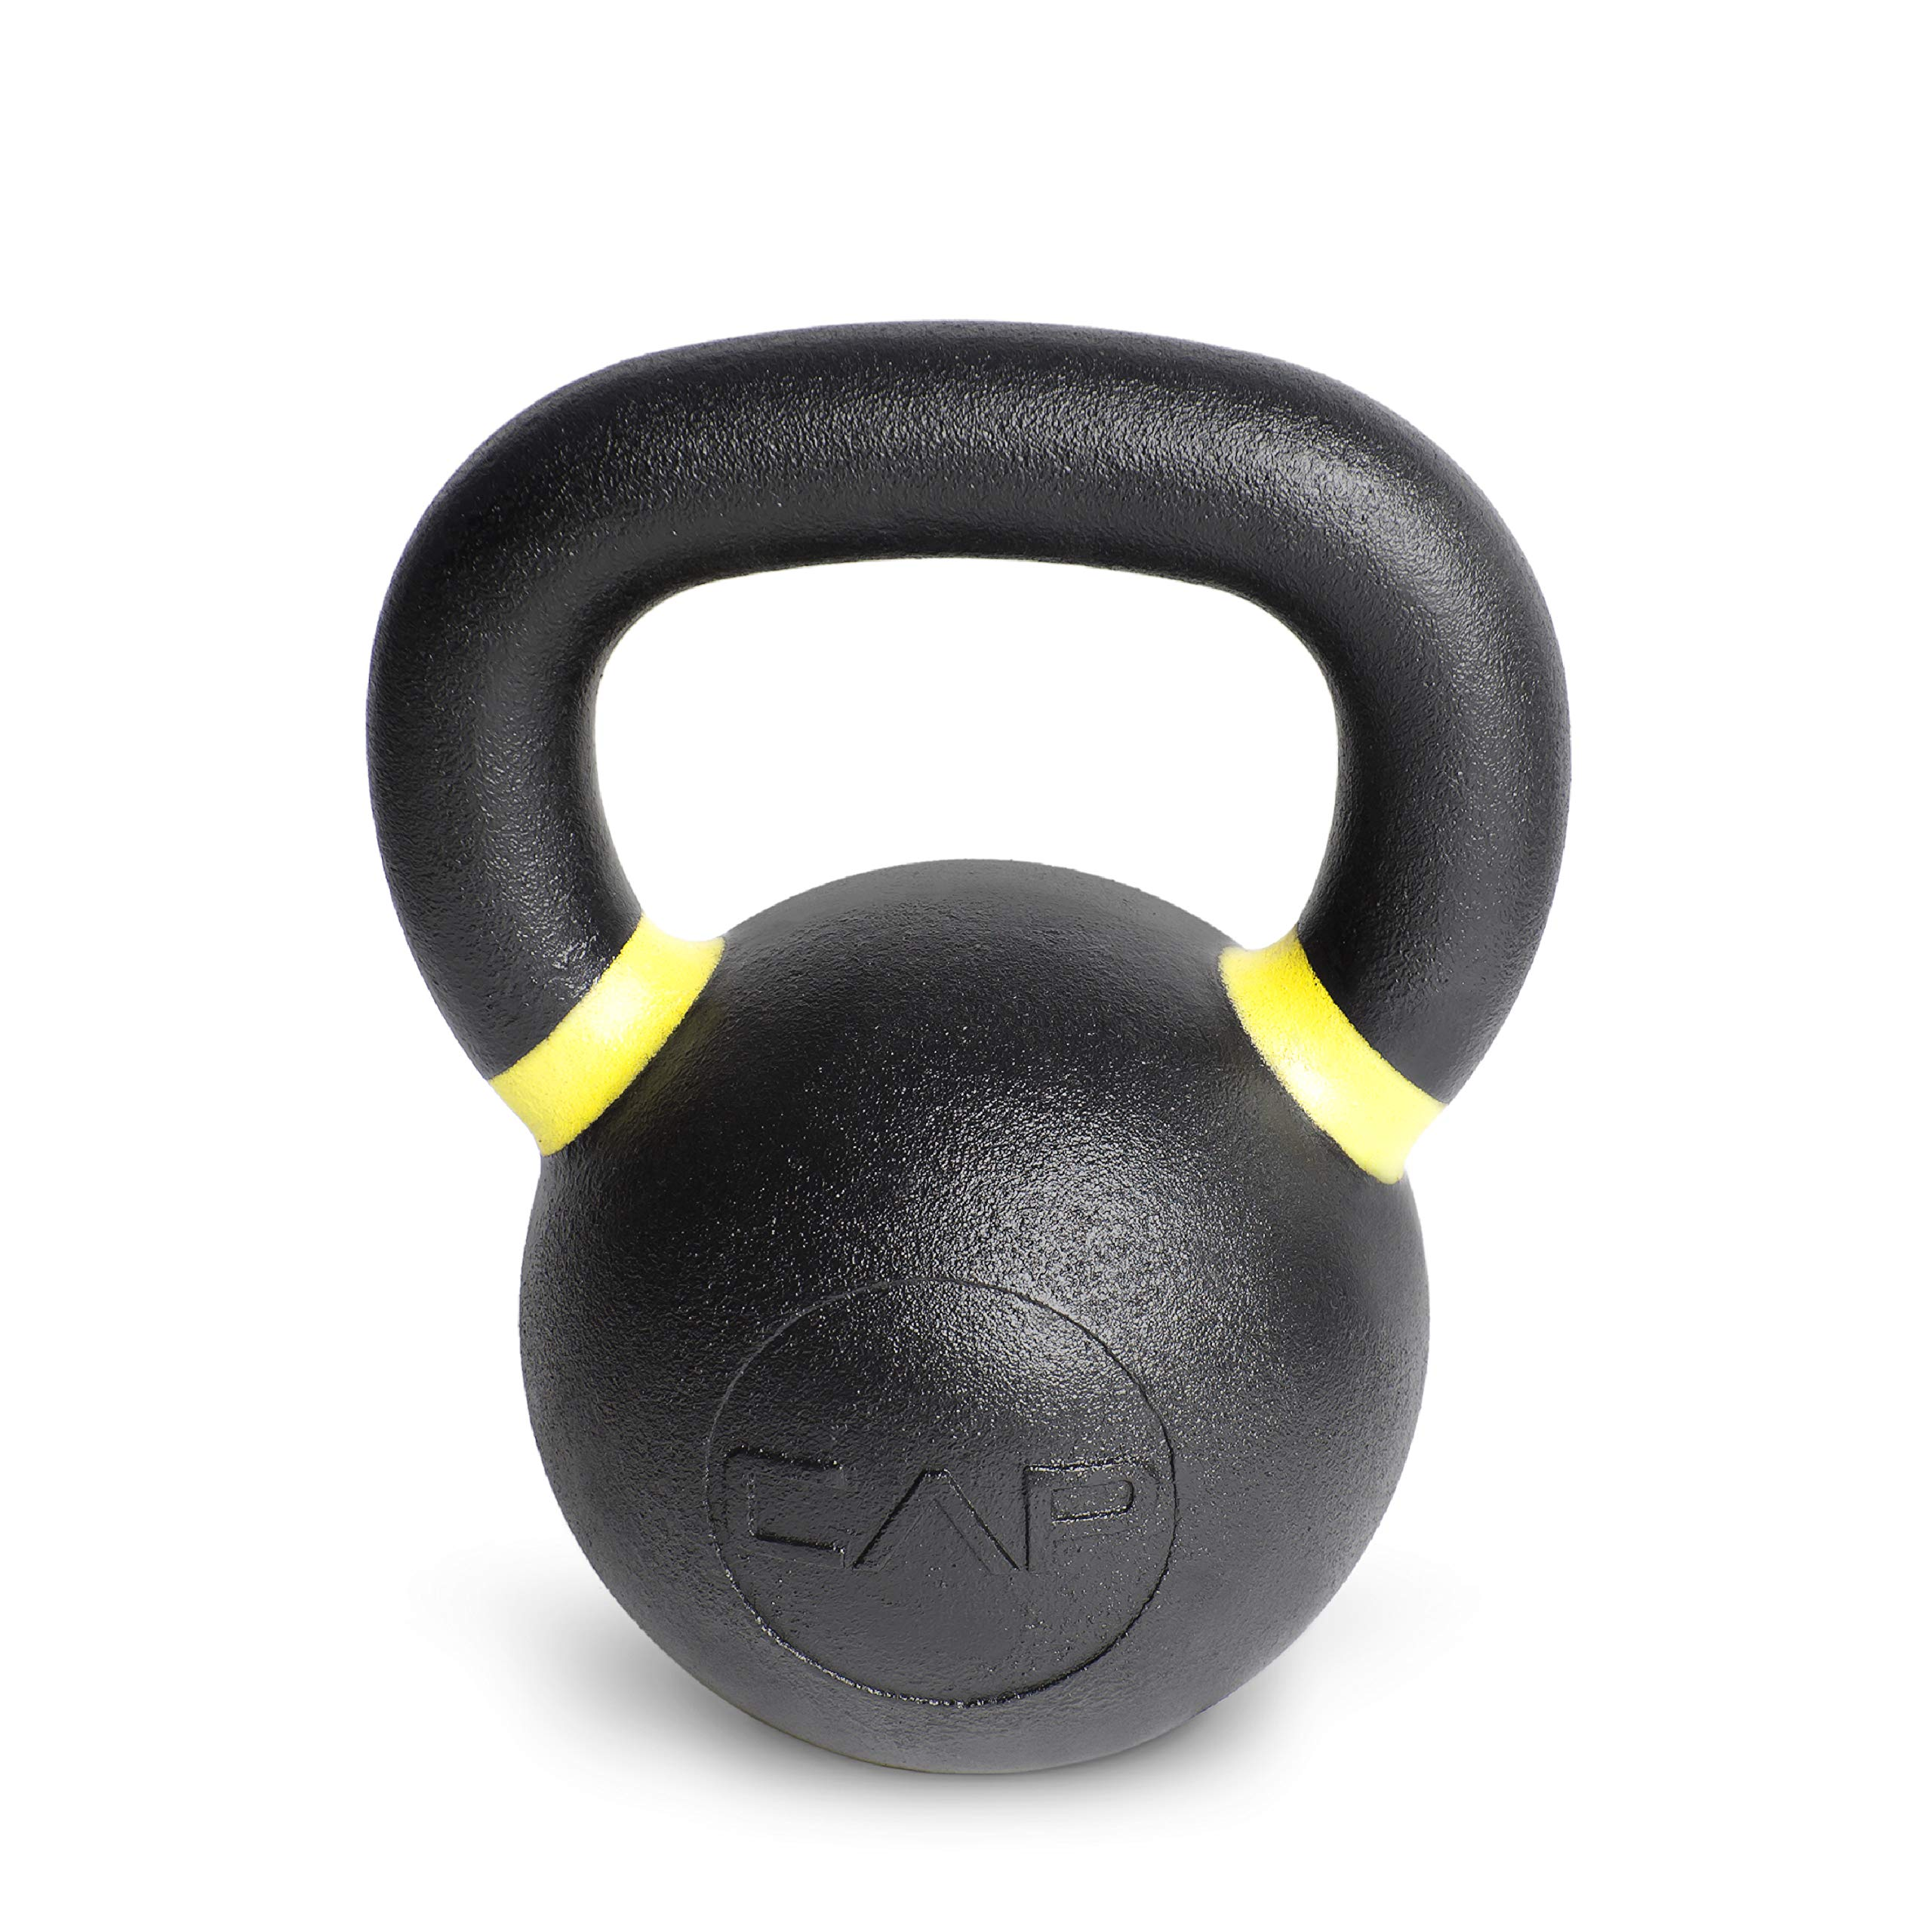 CAP Barbell SDK5-035 Cast Iron Competition Kettlebell Weight, 35 lb., Yellow